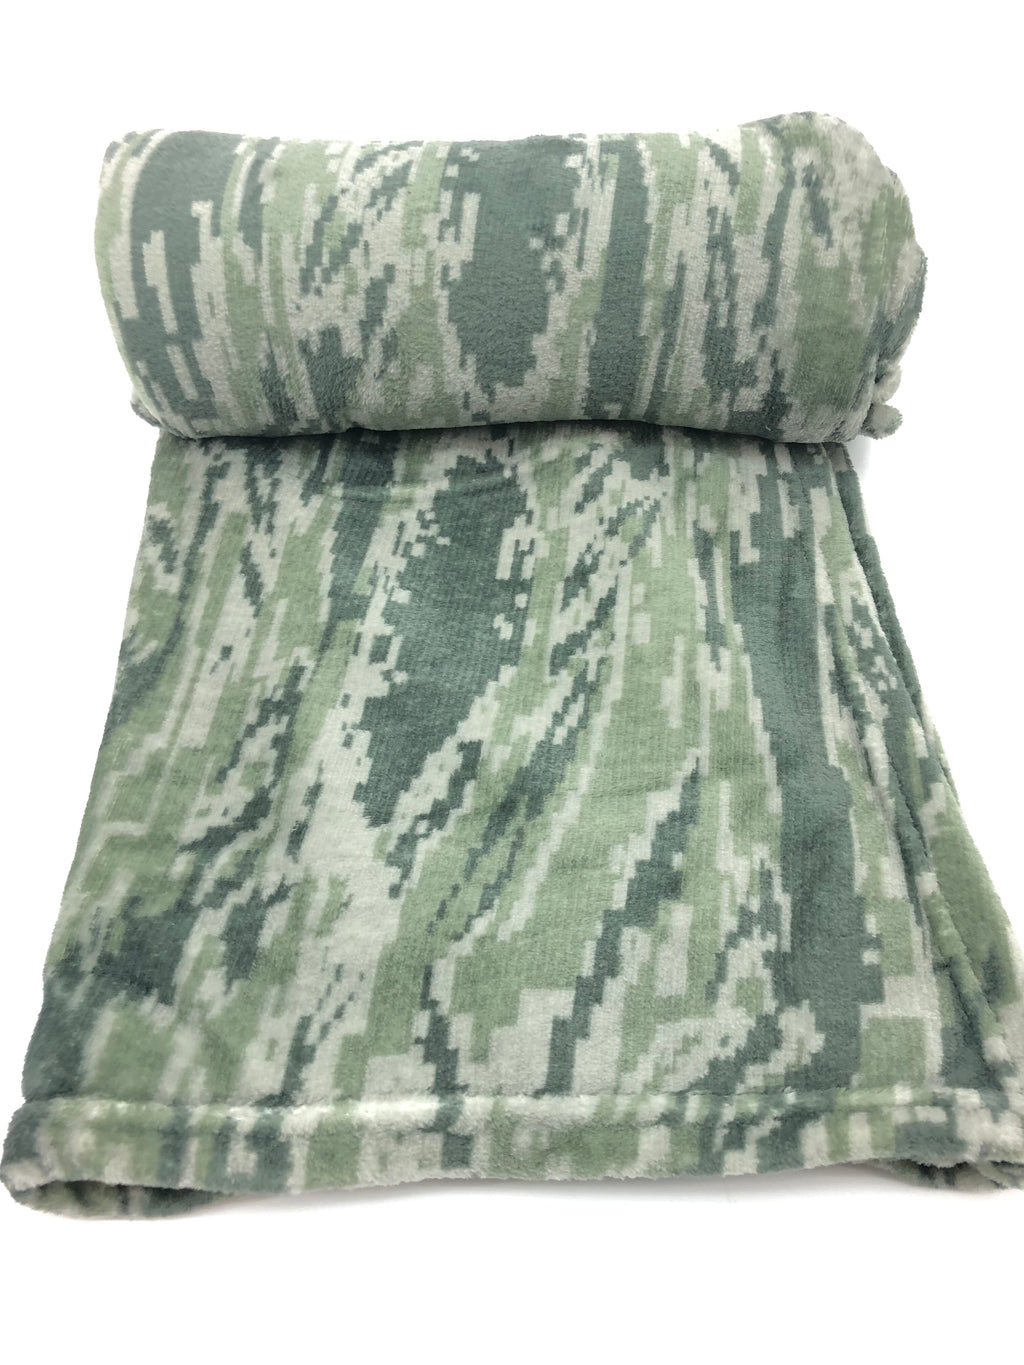 Air Force Camouflage Blanket (20pc case)